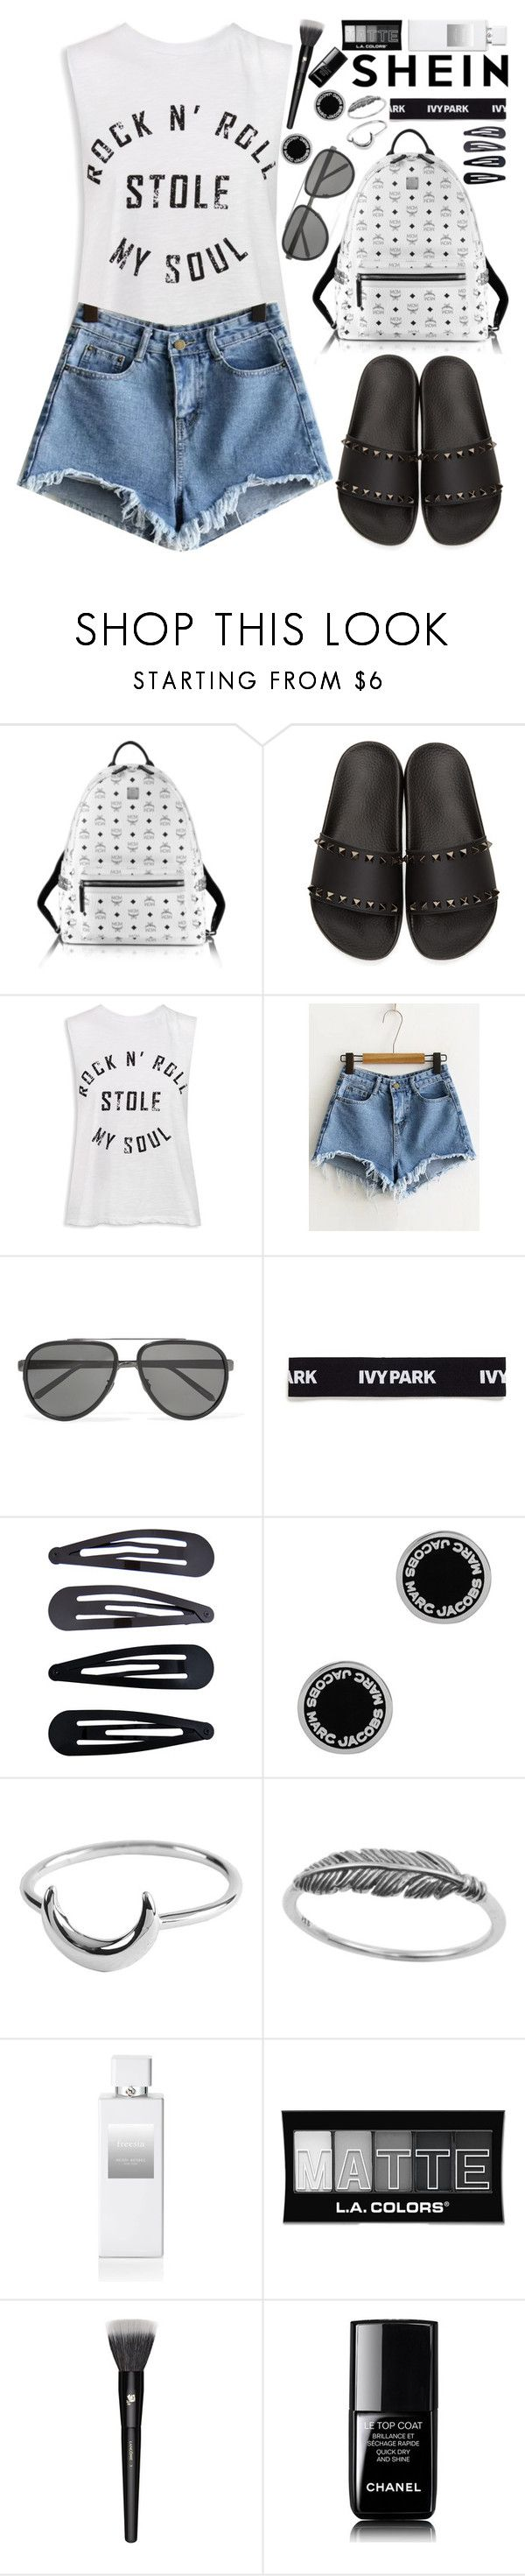 """Shein Blue Raw Hem Denim Shorts!"" by nvoyce ❤ liked on Polyvore featuring MCM, Valentino, Sans Souci, Linda Farrow, Ivy Park, Accessorize, Marc Jacobs, Henri Bendel, L.A. Colors and Lancôme"